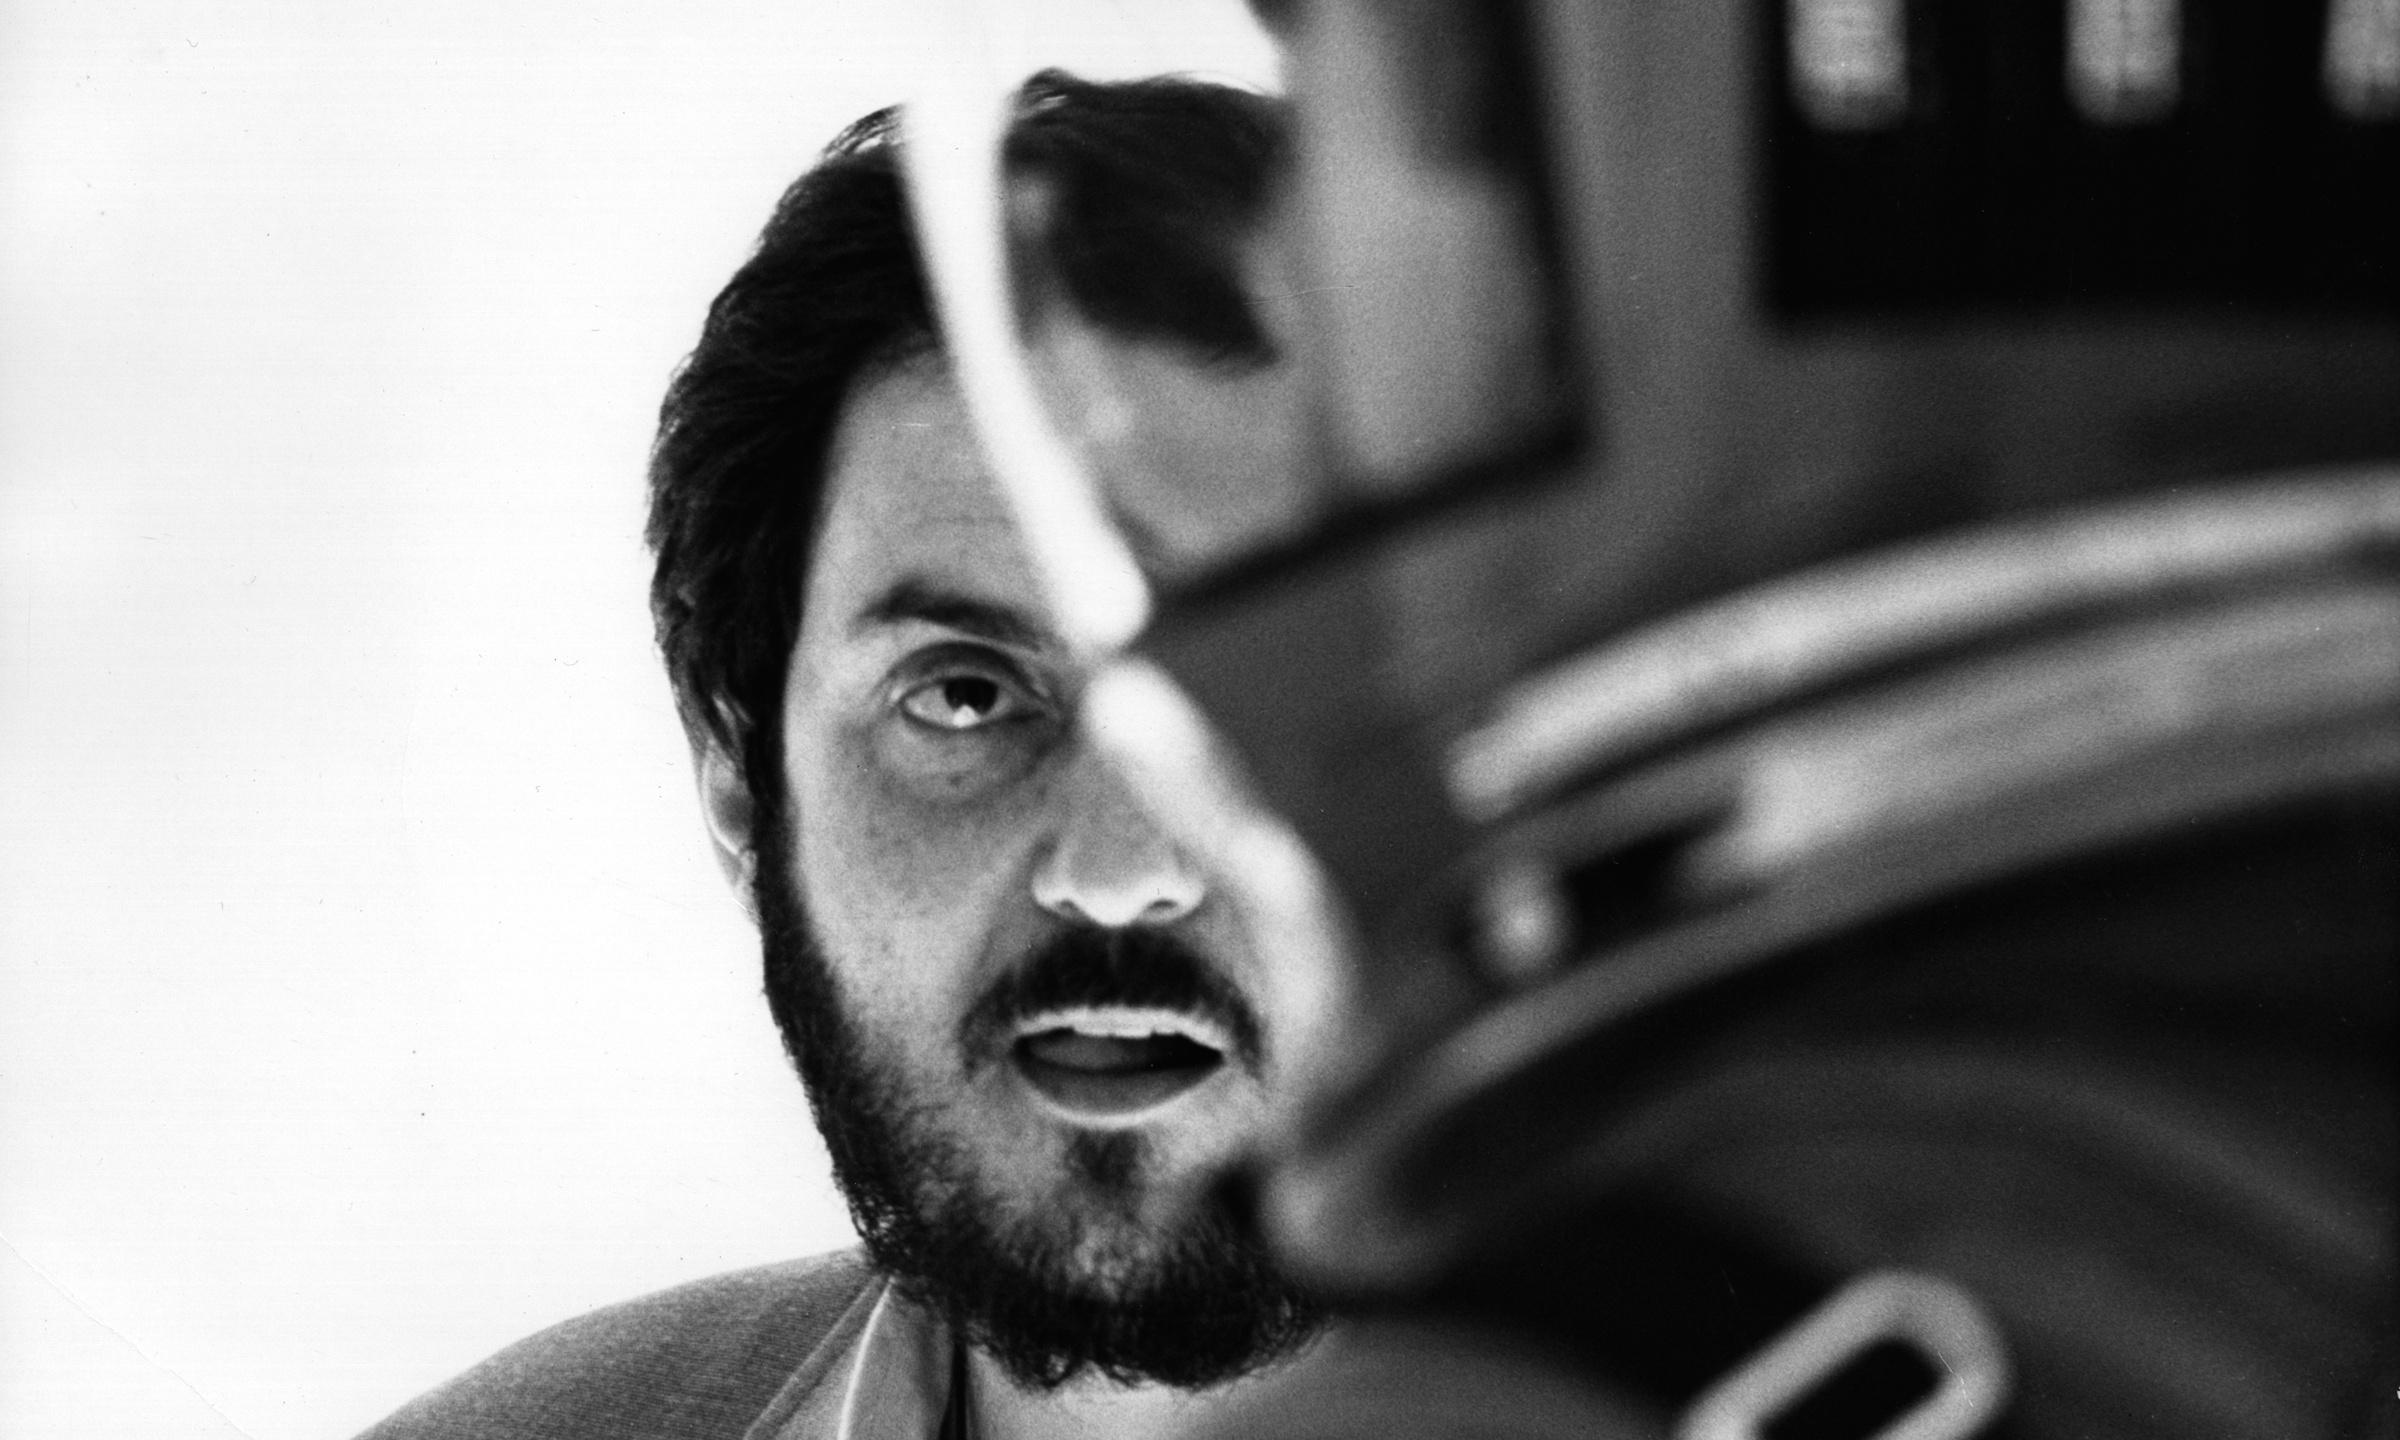 Inside the odyssey: taking a closer look at Stanley Kubrick's 2001